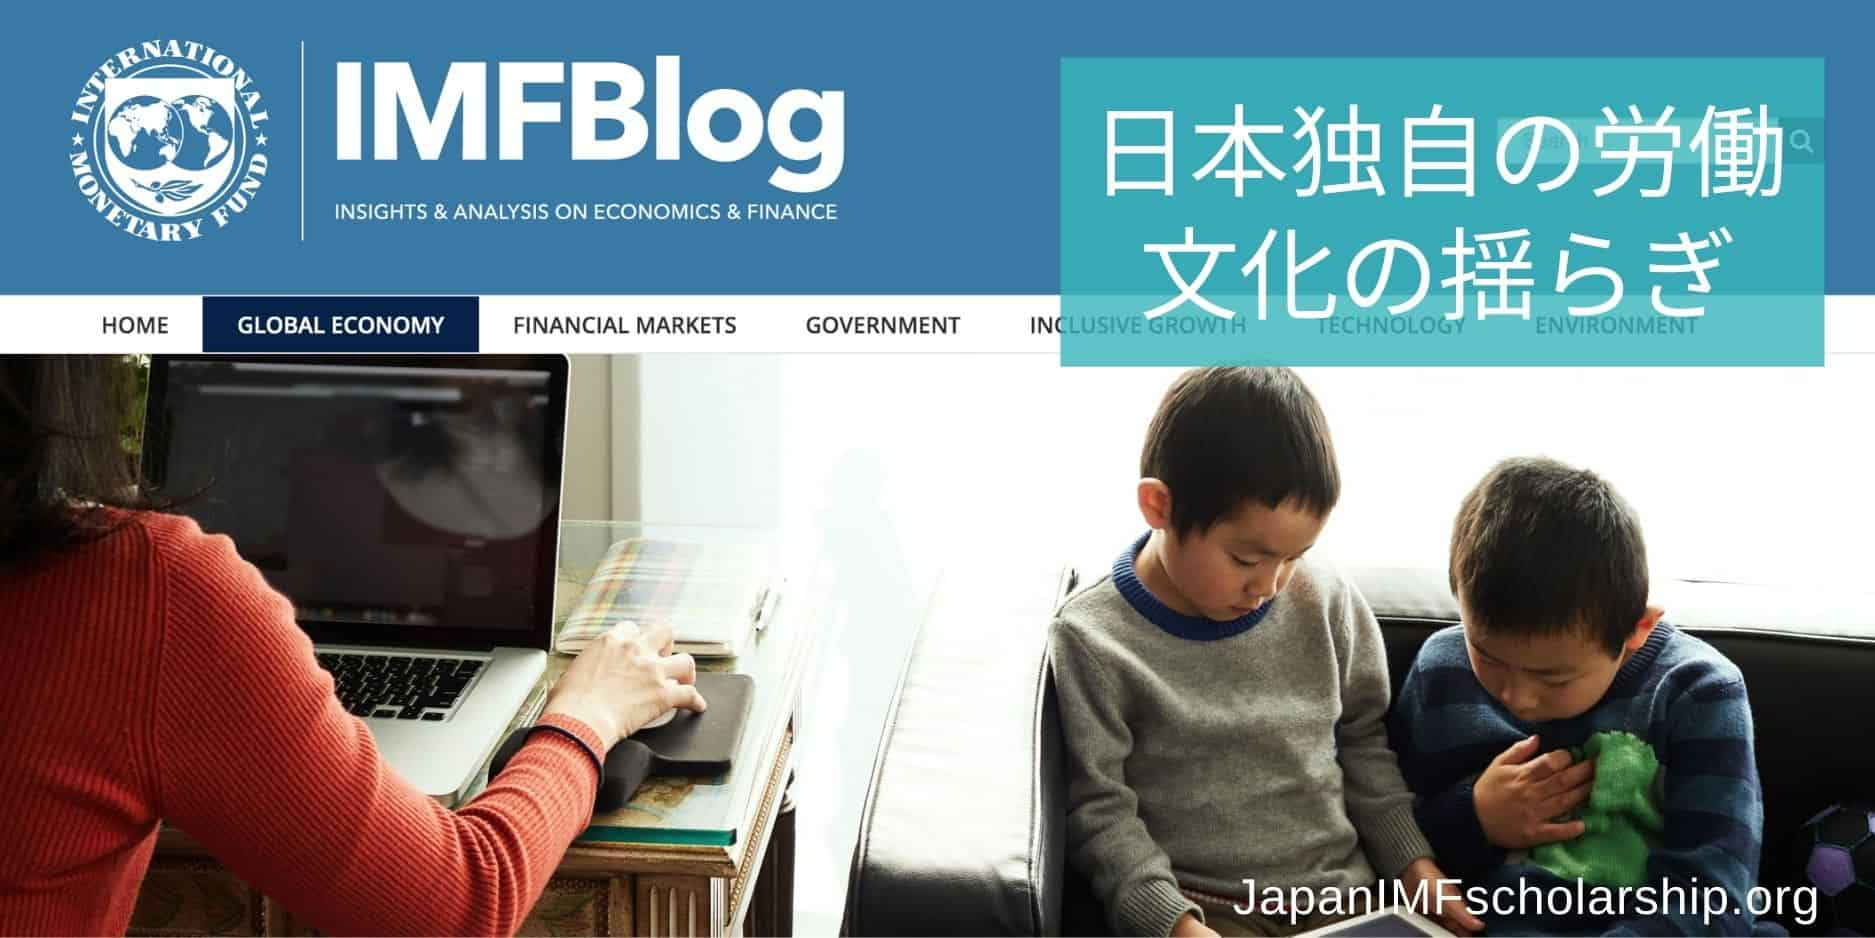 jisp web-fb imf blog guilt gender and an inclusive recovery a lesson from japan